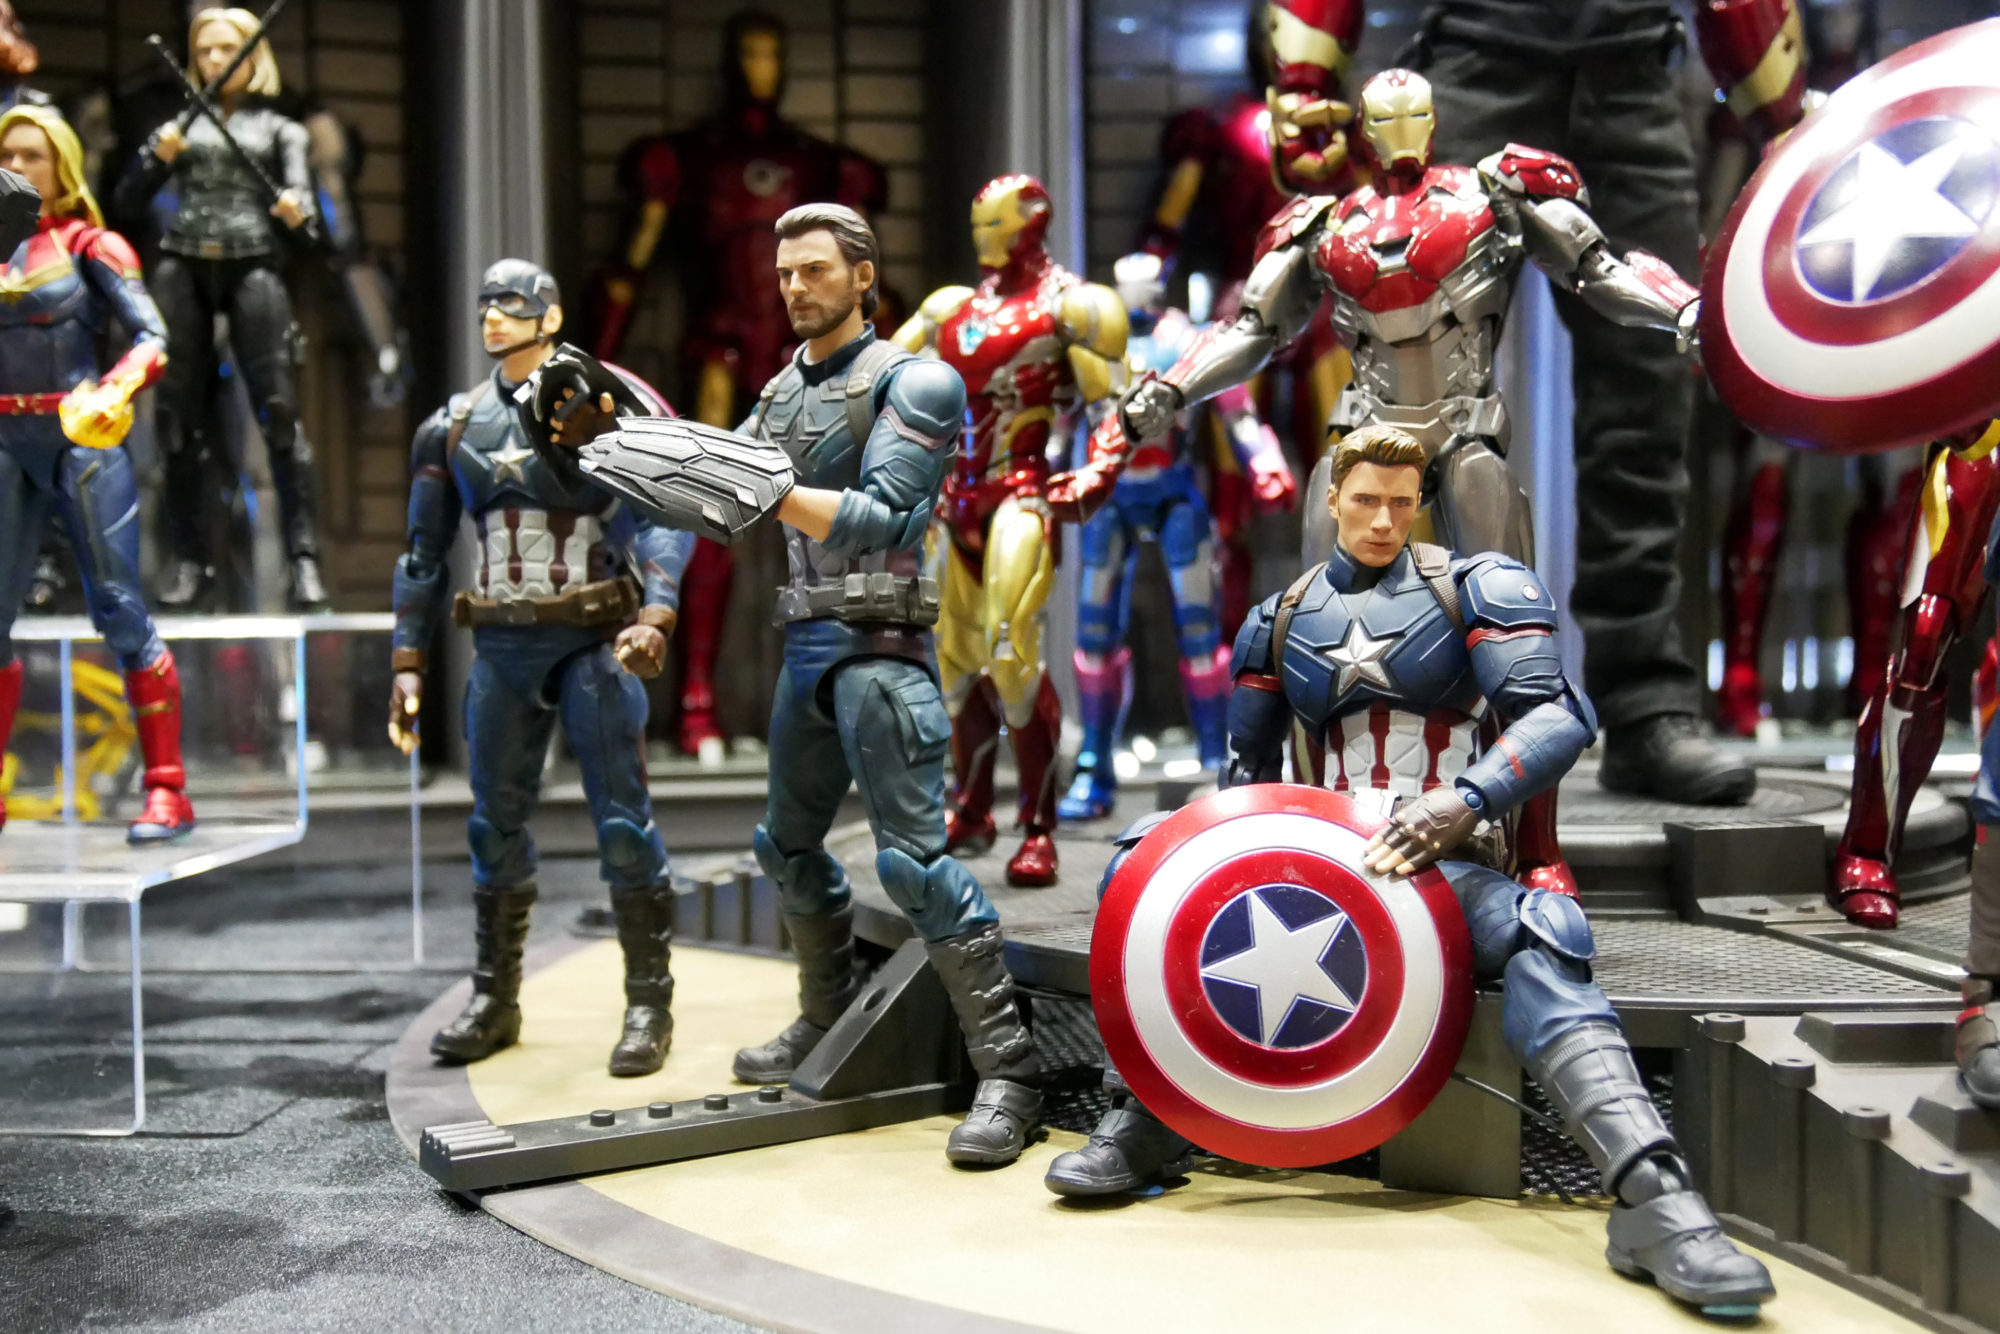 Rogue Toys, a vintage collectible video game, and toy store is meeting the need of fandoms everywhere. And they're making bank while doing it.